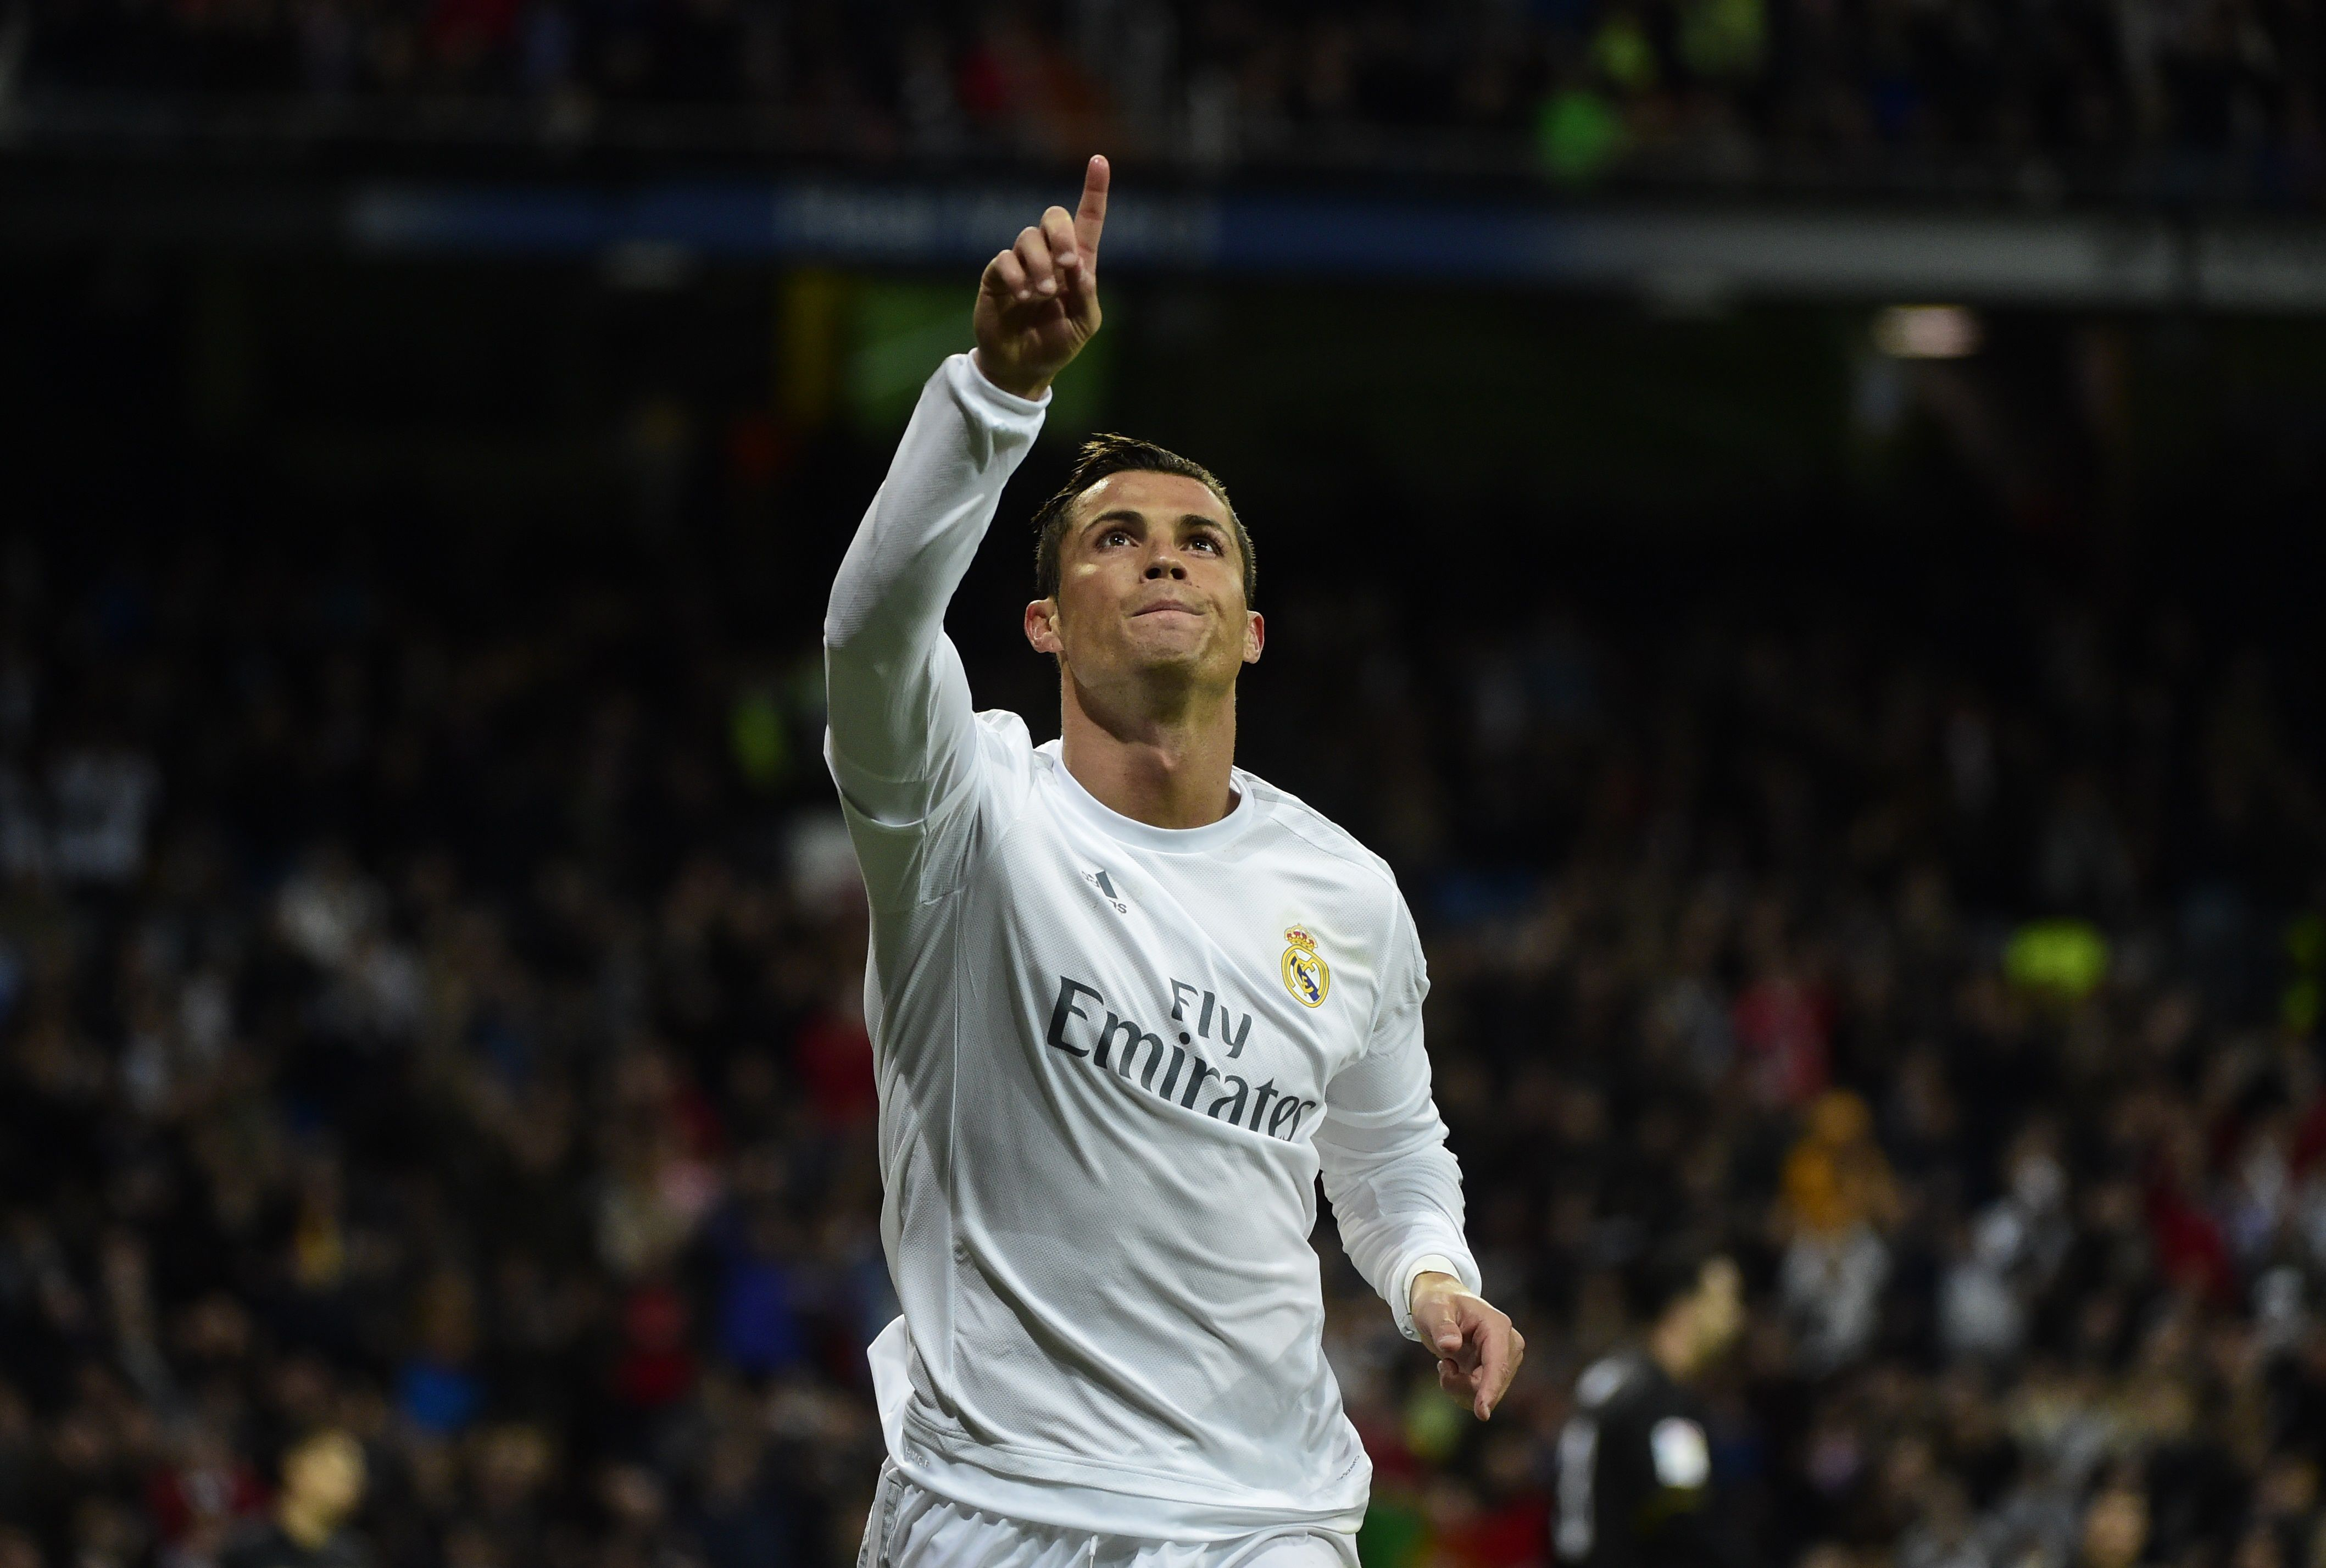 real madrid, barcelona, clasico, history, records, winners, who has won more, clasicos, stats, wins, records, winners, historical, statistics, ,